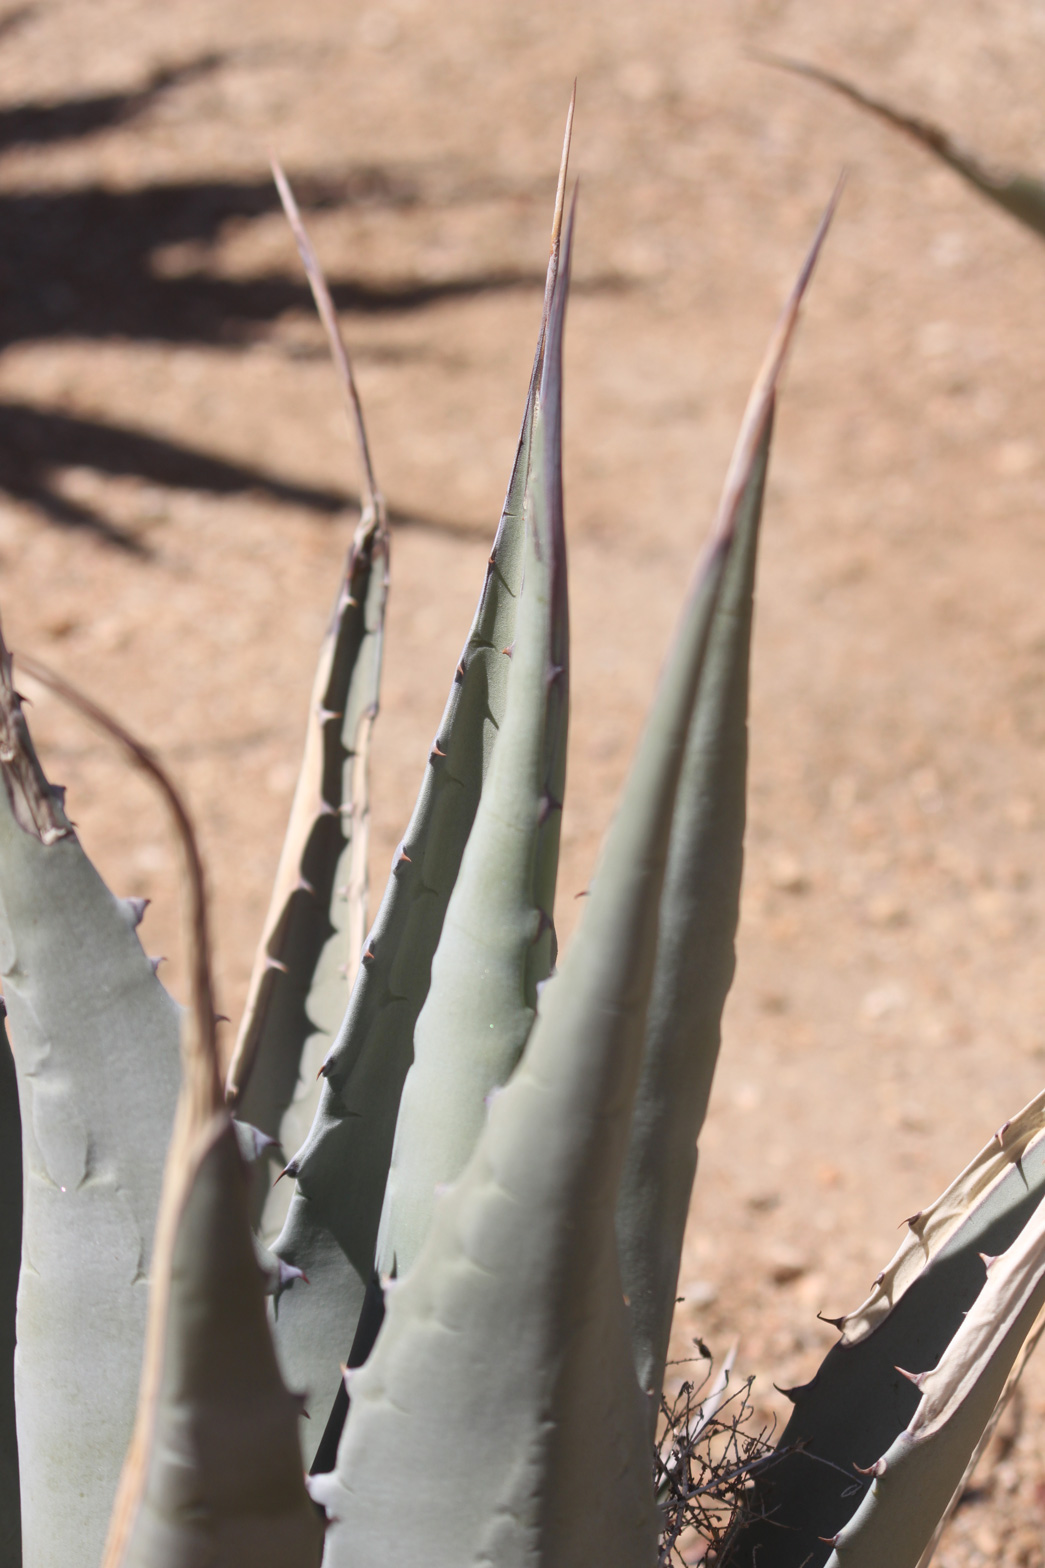 A close-up of the leaves of Desert Agave.